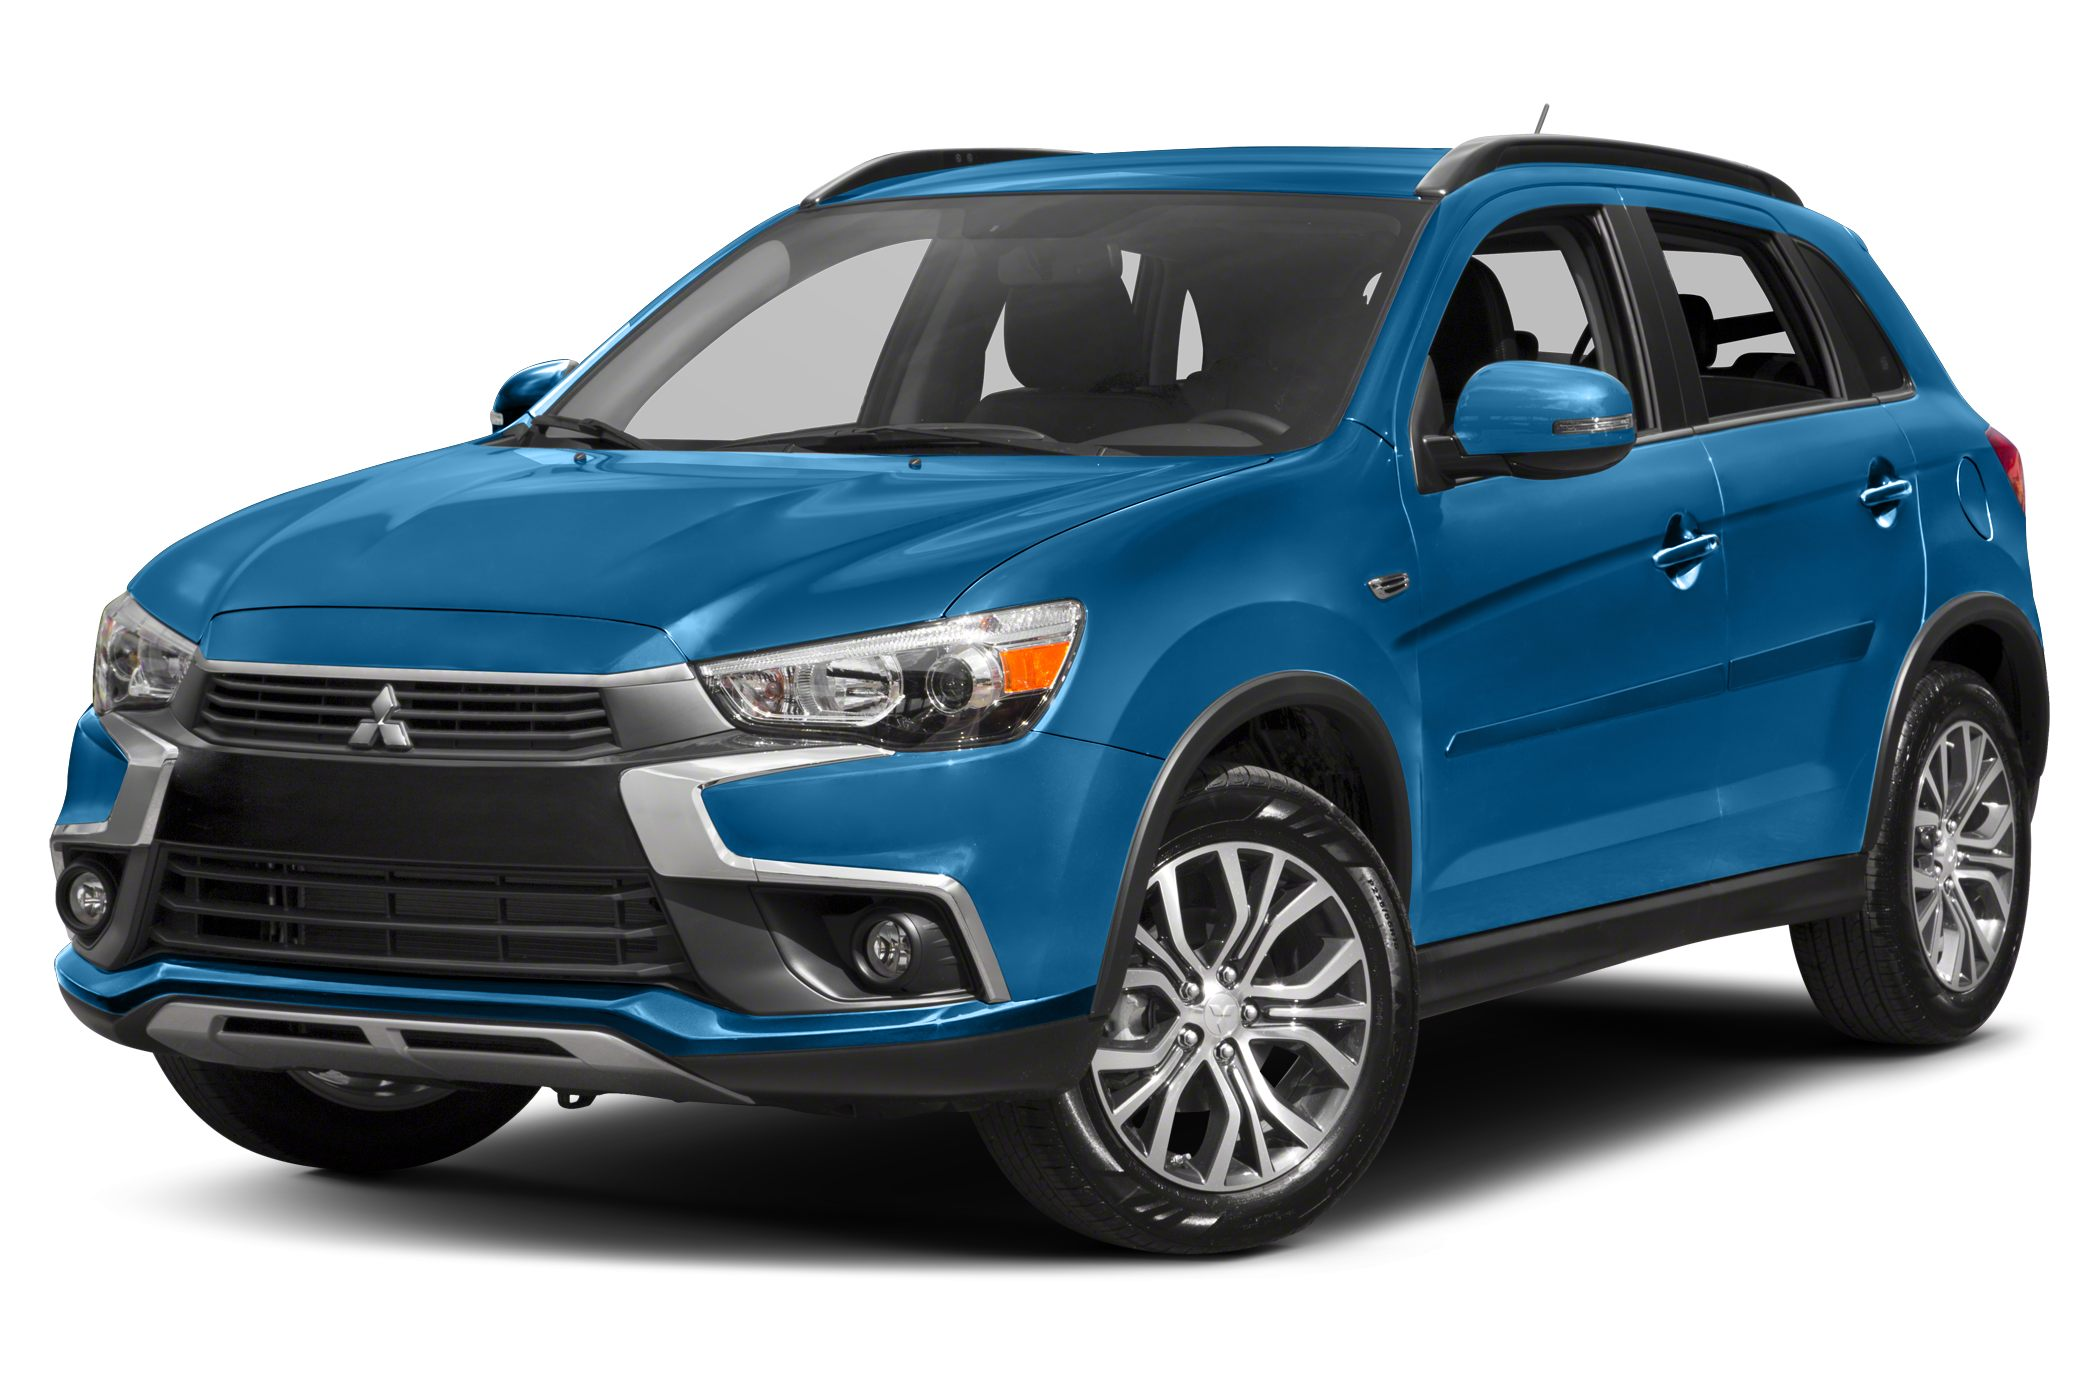 2016 mitsubishi outlander sport puts on a fresh face autoblog. Black Bedroom Furniture Sets. Home Design Ideas